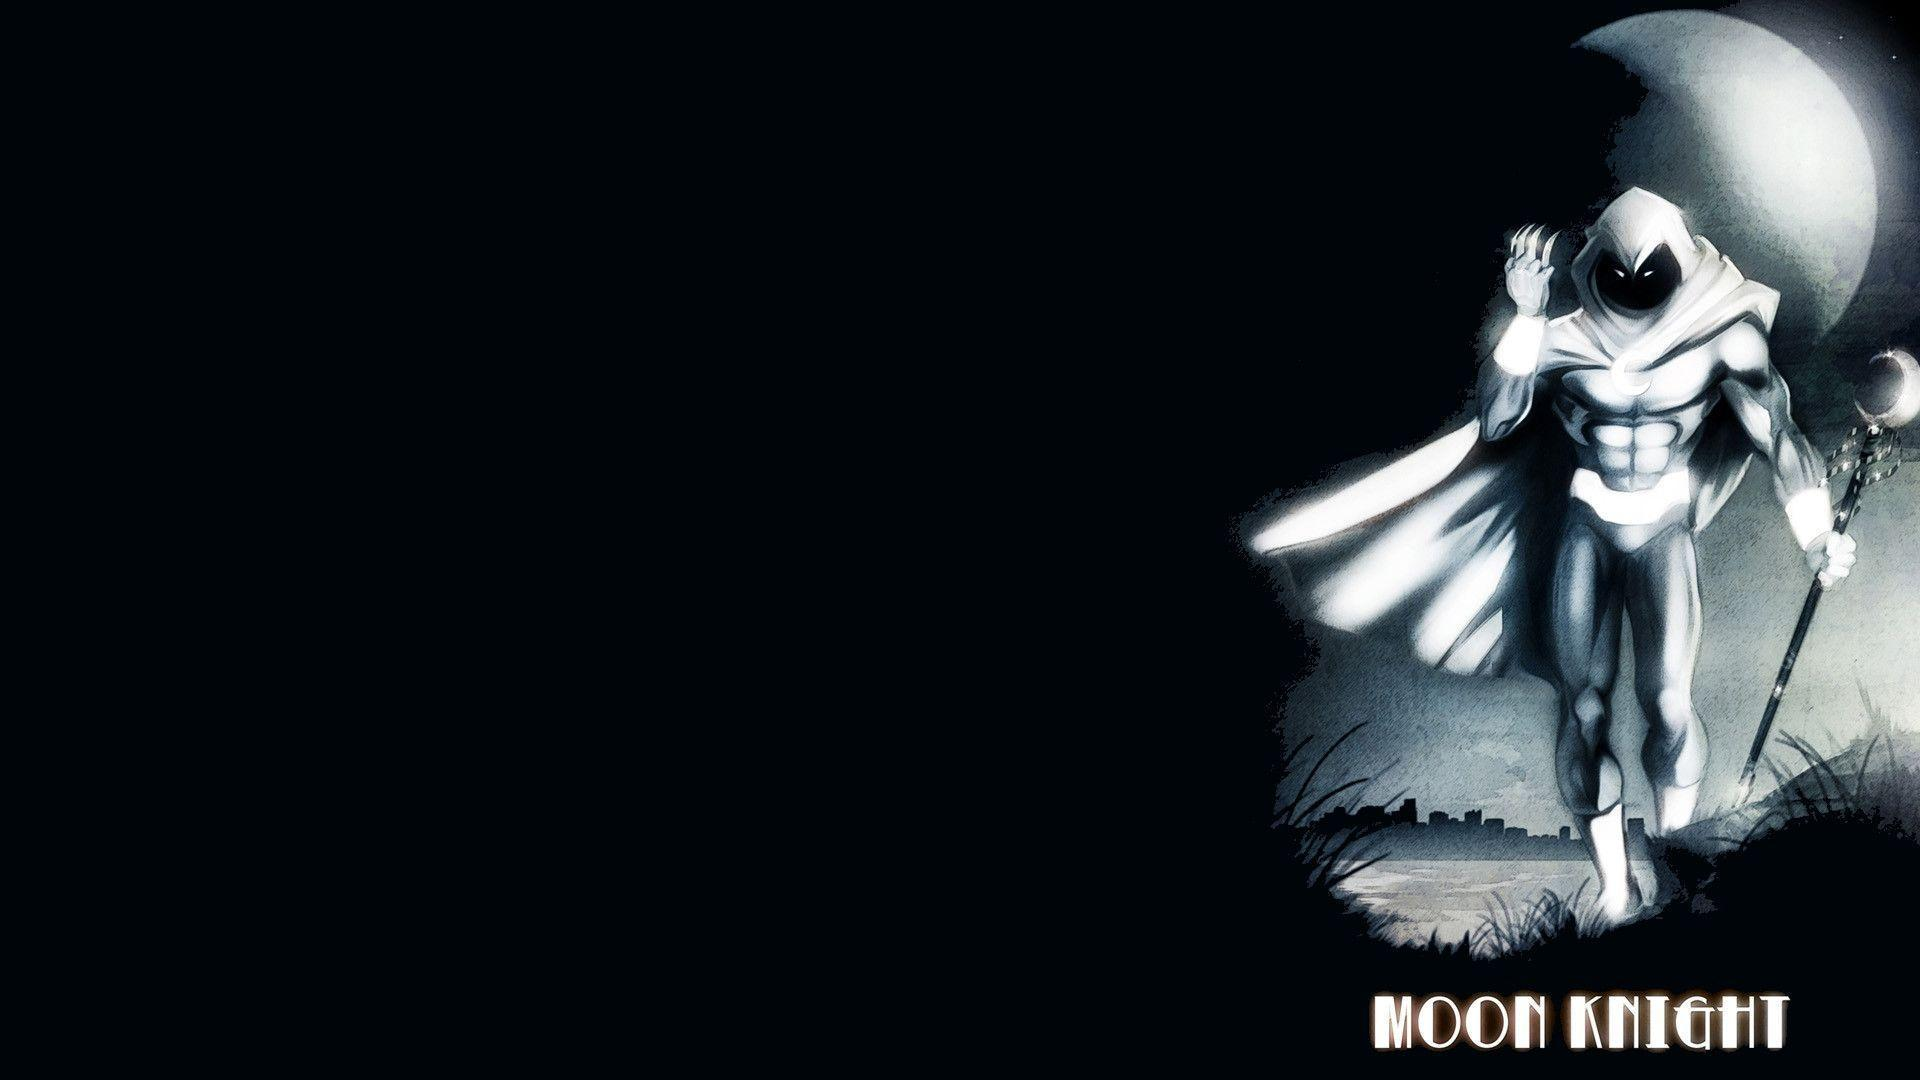 Moon Knight Computer Wallpapers, Desktop Backgrounds 1920x1080 Id ...